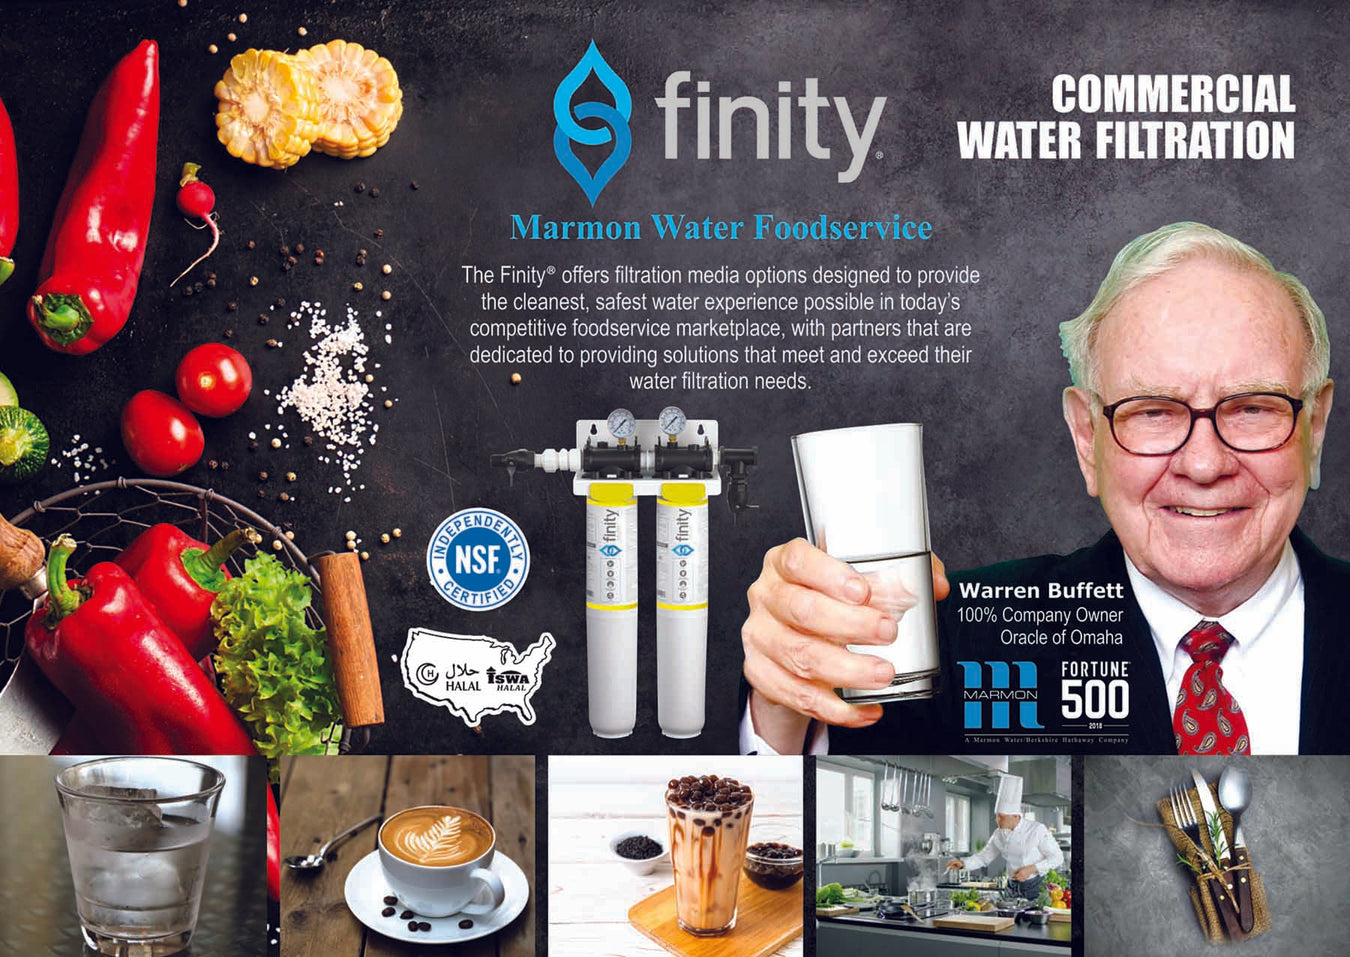 FINITY FOOD SERVICE WATER FILTRATION SYSTEM